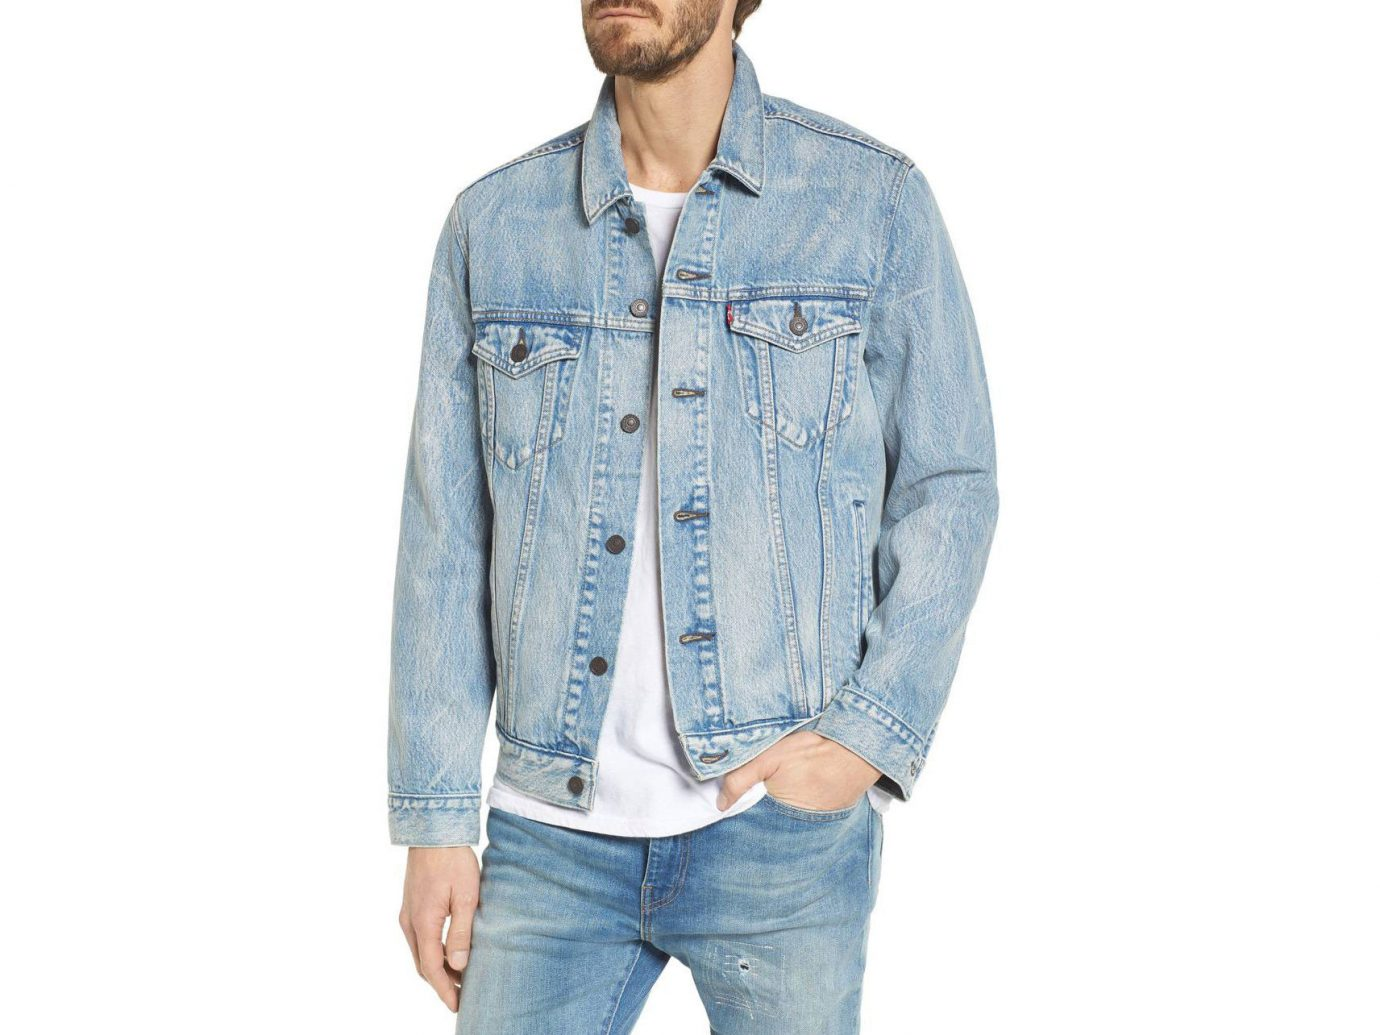 Style + Design Travel Shop person denim standing jacket wearing jeans sleeve textile outerwear material product hat posing button trousers